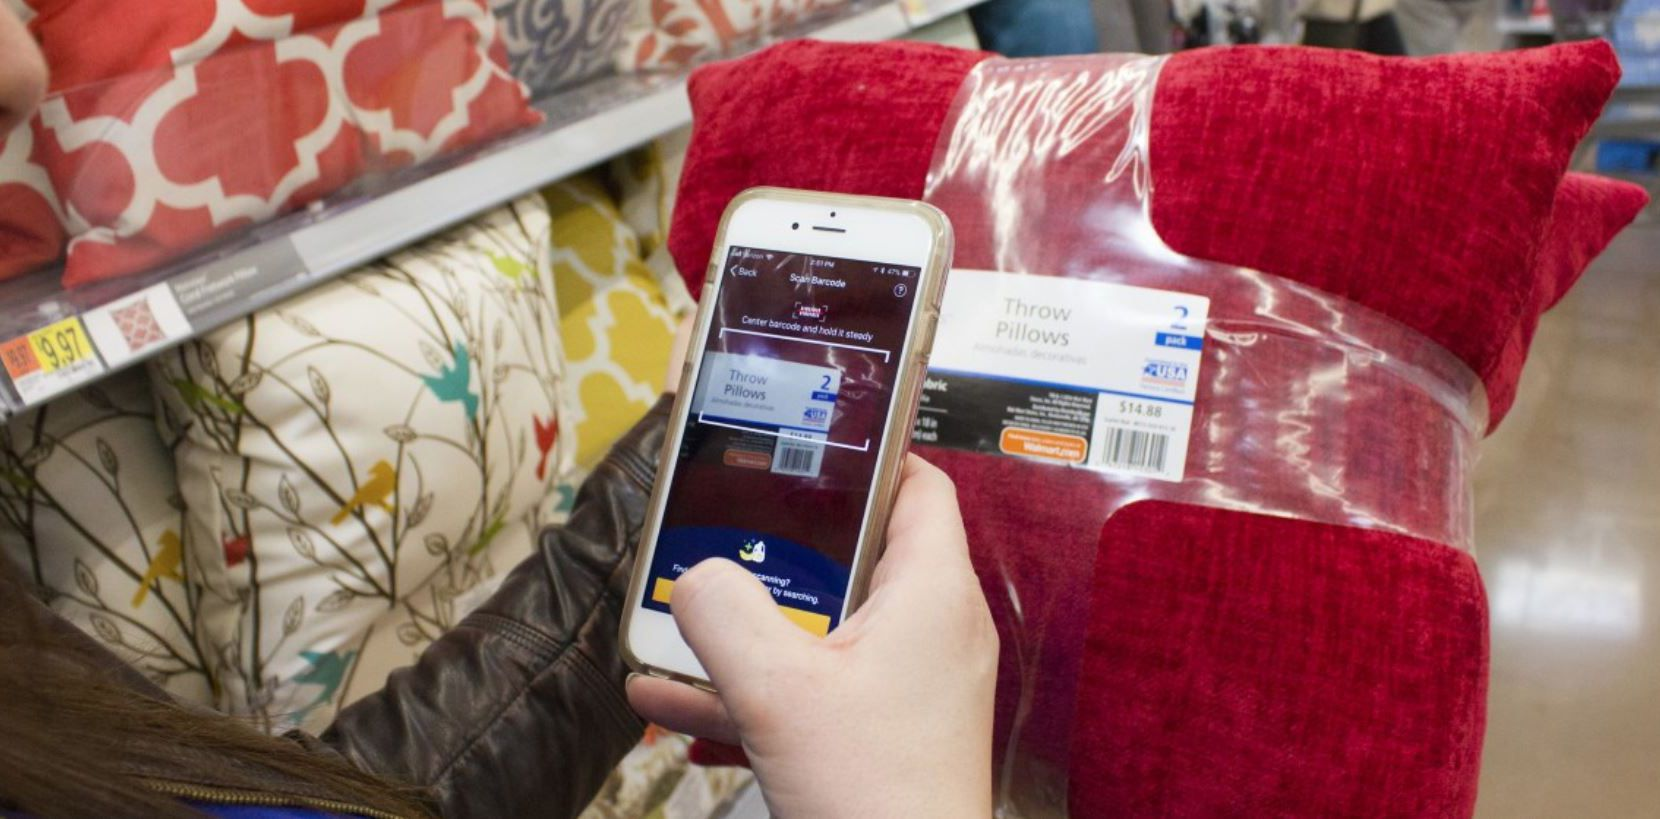 Walmart said Wednesday that had ended its Scan & Go scan-as-you-shop service after a test in several stores, including in Dallas-Fort Worth.